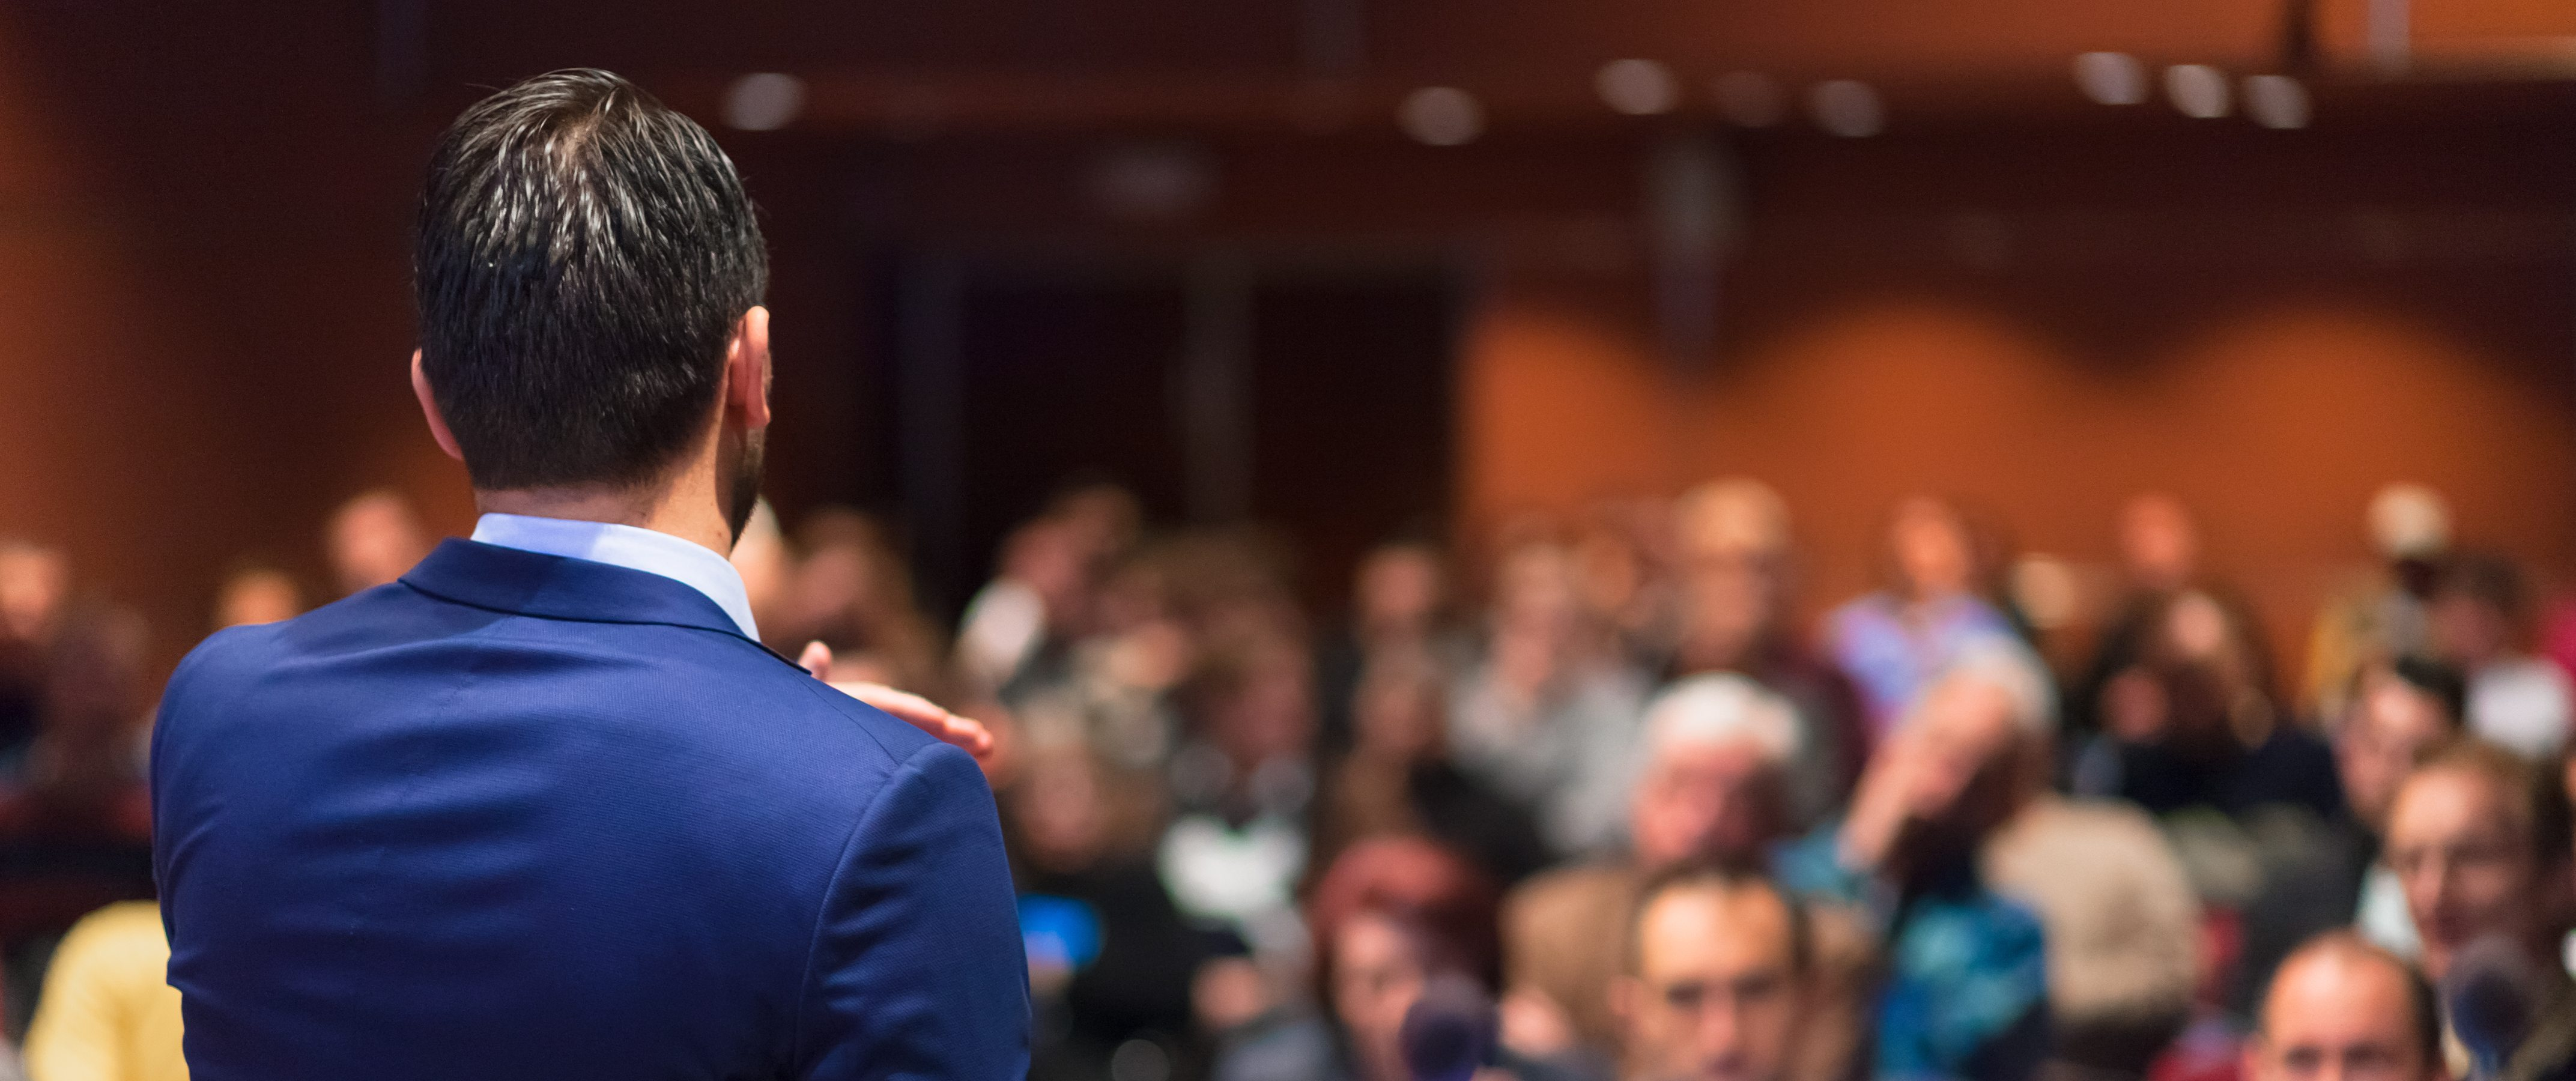 The Keys to Becoming a Successful Speaker